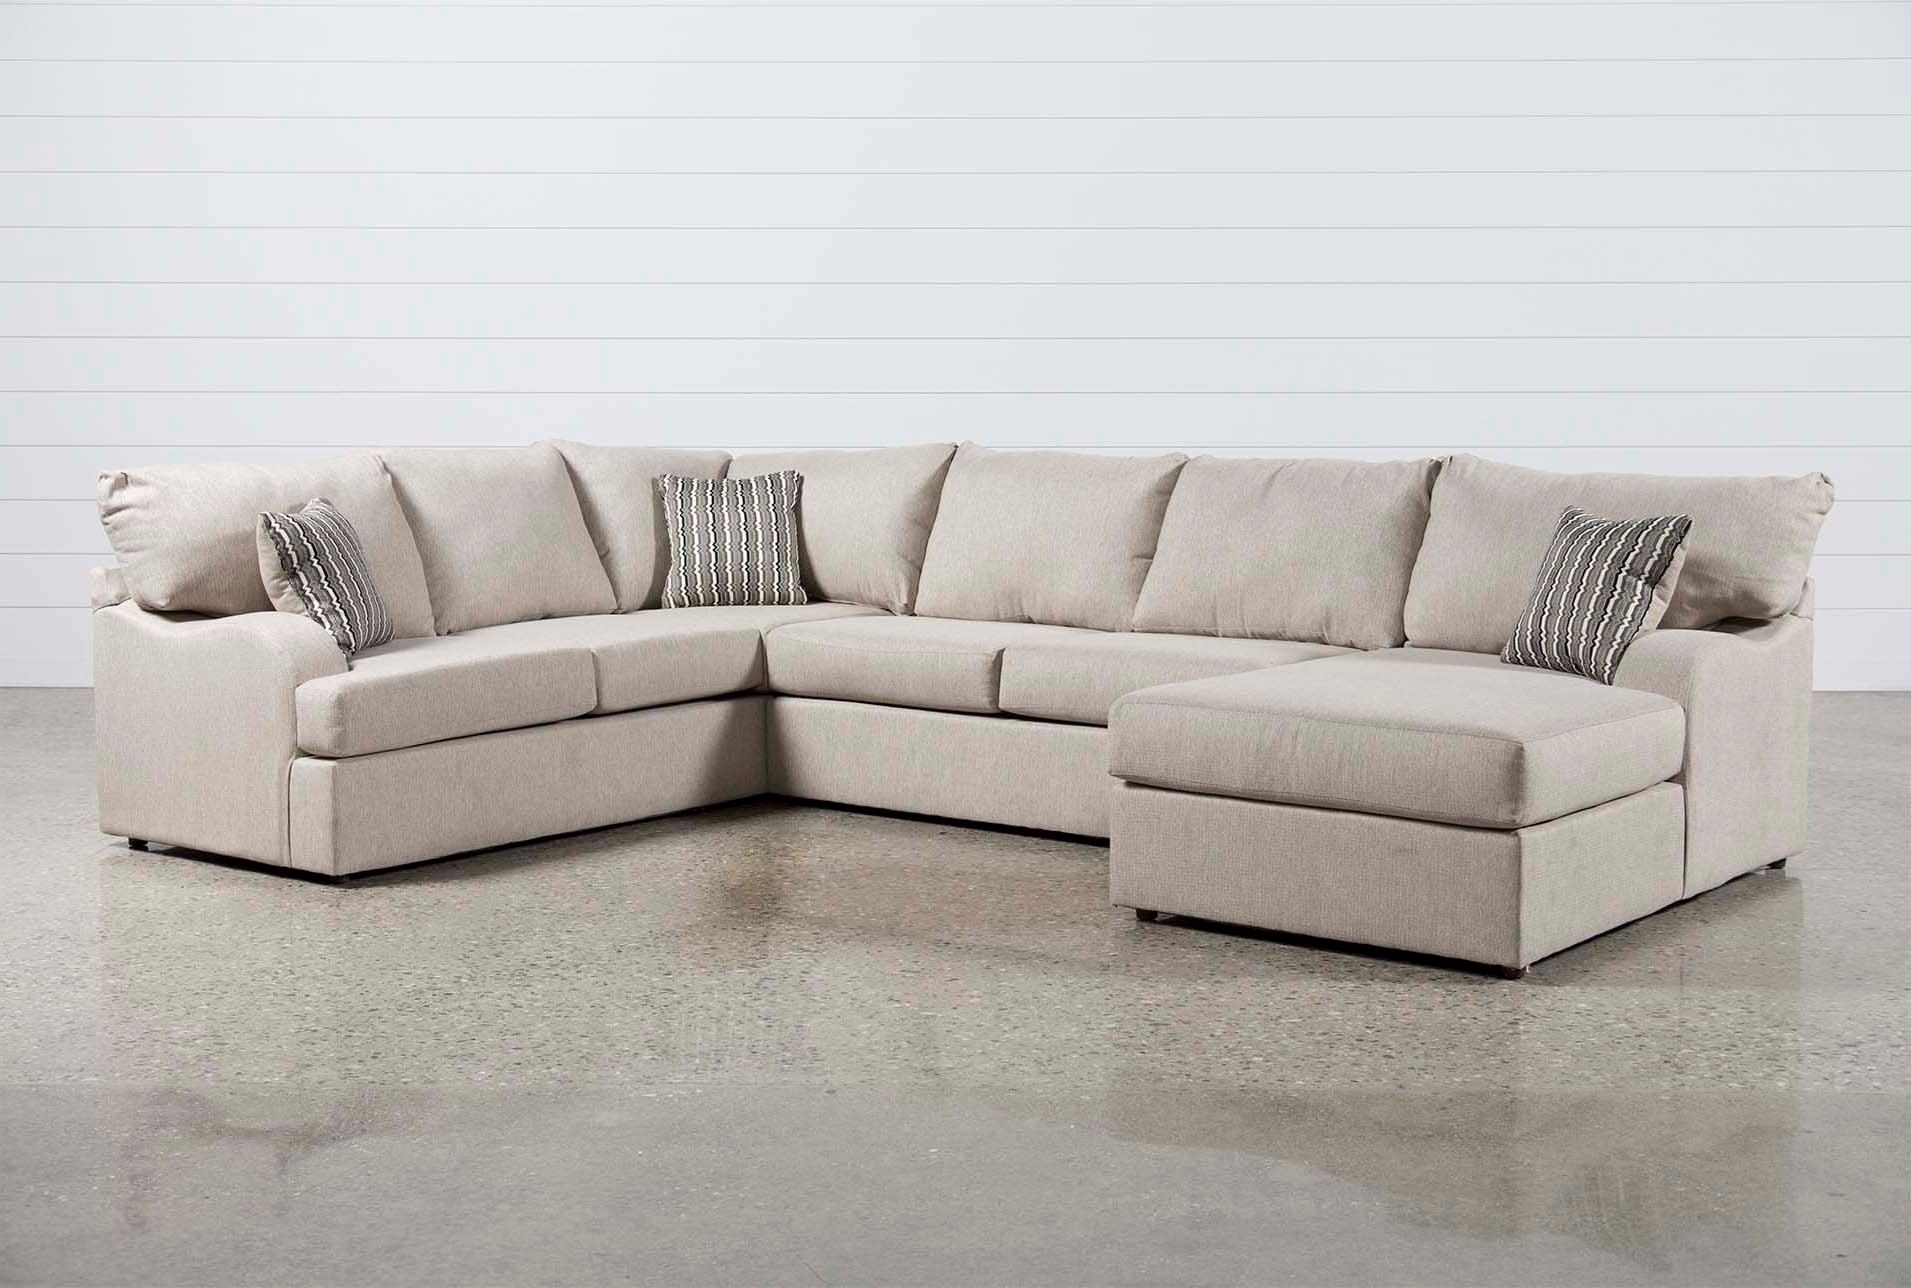 Raf Sectional Turdur 3 Piece W Loveseat Living Spaces 223462 0 Jpg Within Turdur 3 Piece Sectionals With Raf Loveseat (Image 21 of 25)